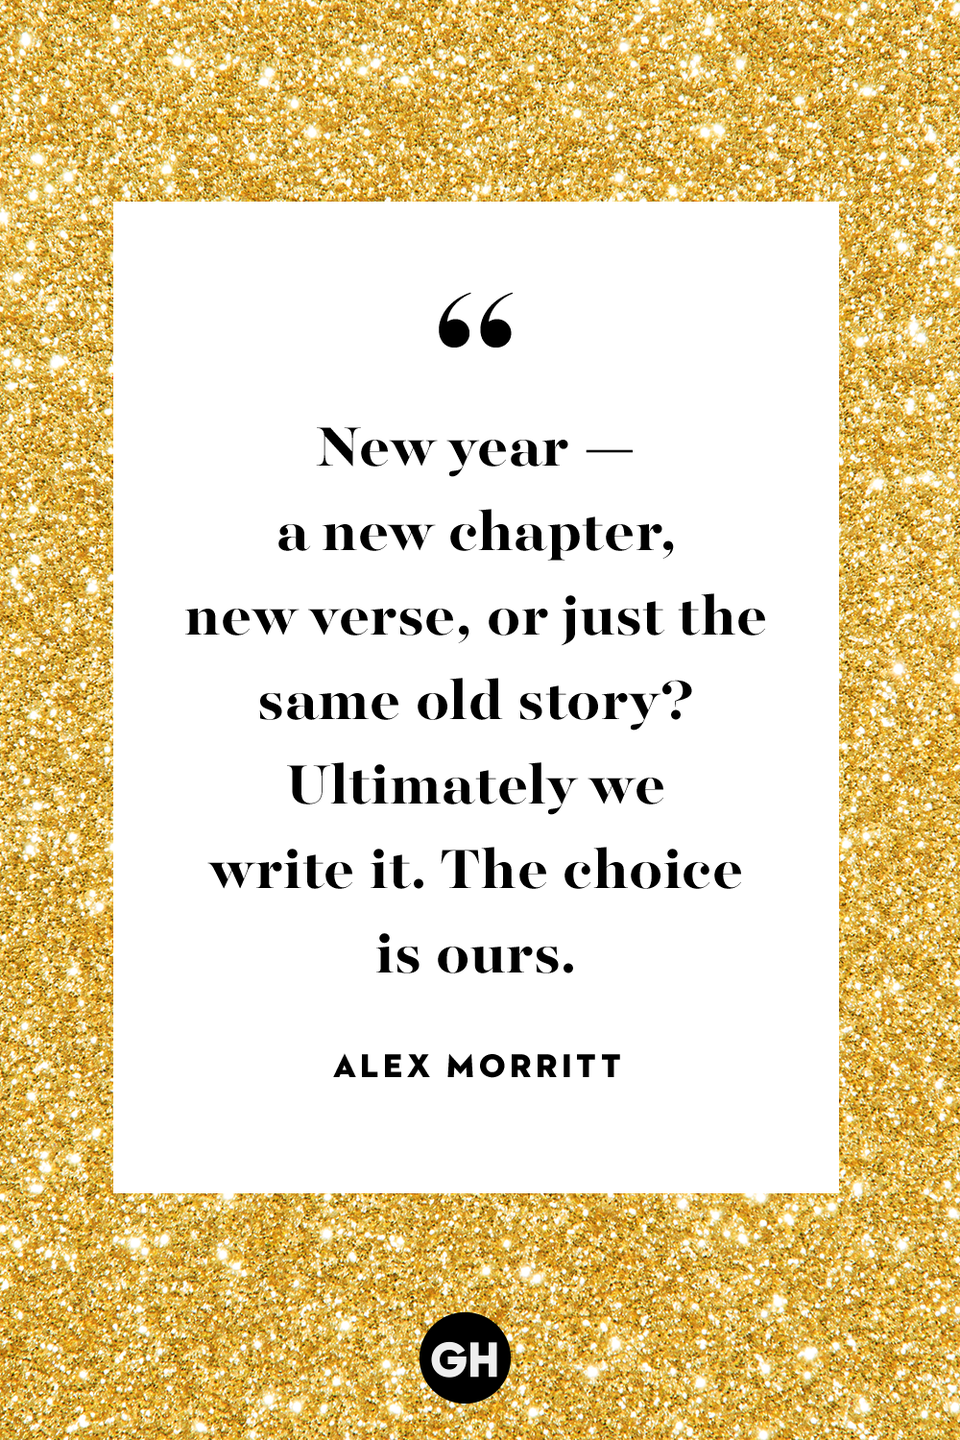 <p>New year — a new chapter, new verse, or just the same old story? Ultimately we write it. The choice is ours.</p>